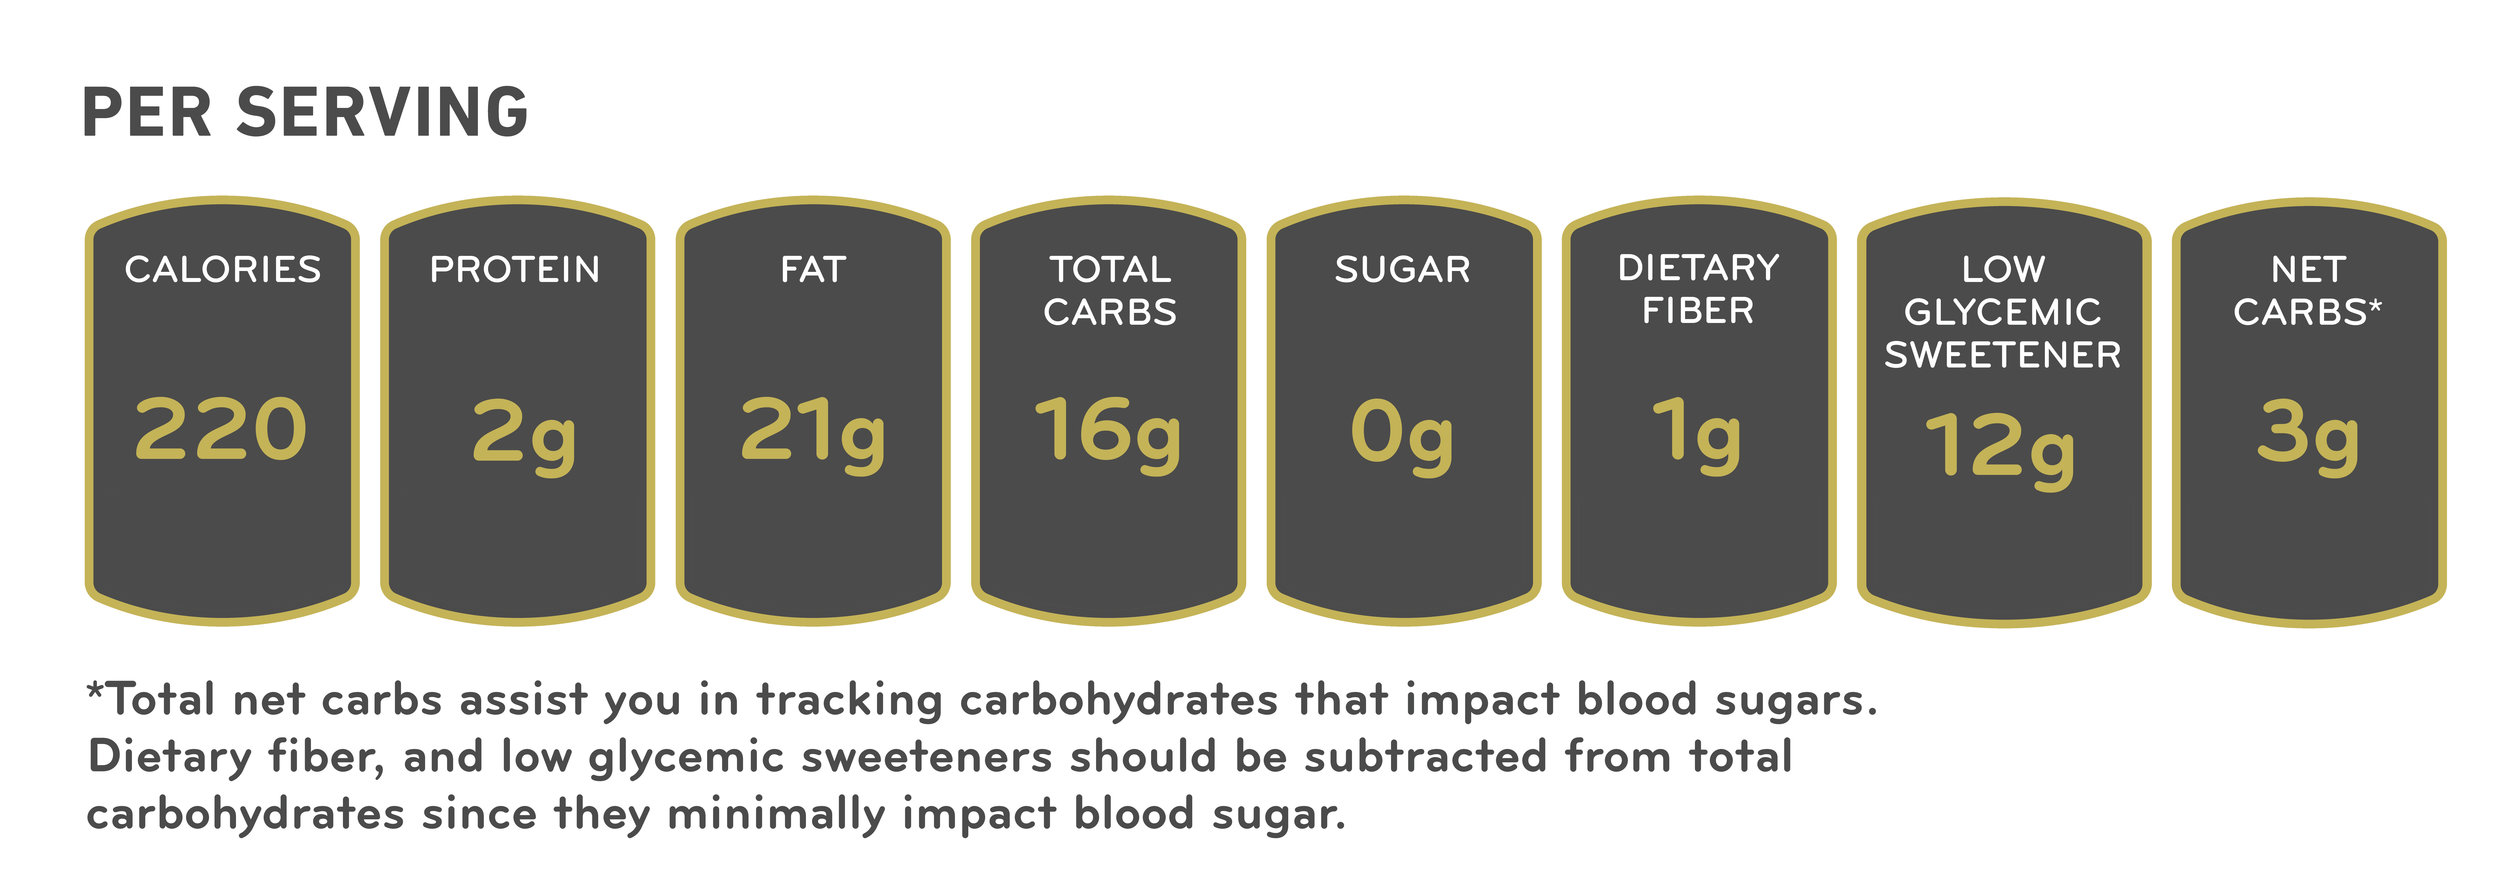 LOW CARB KETO QUICK AND EASY CHOCOLATE SAUCE RECIP NUTRITION FACTS.jpg